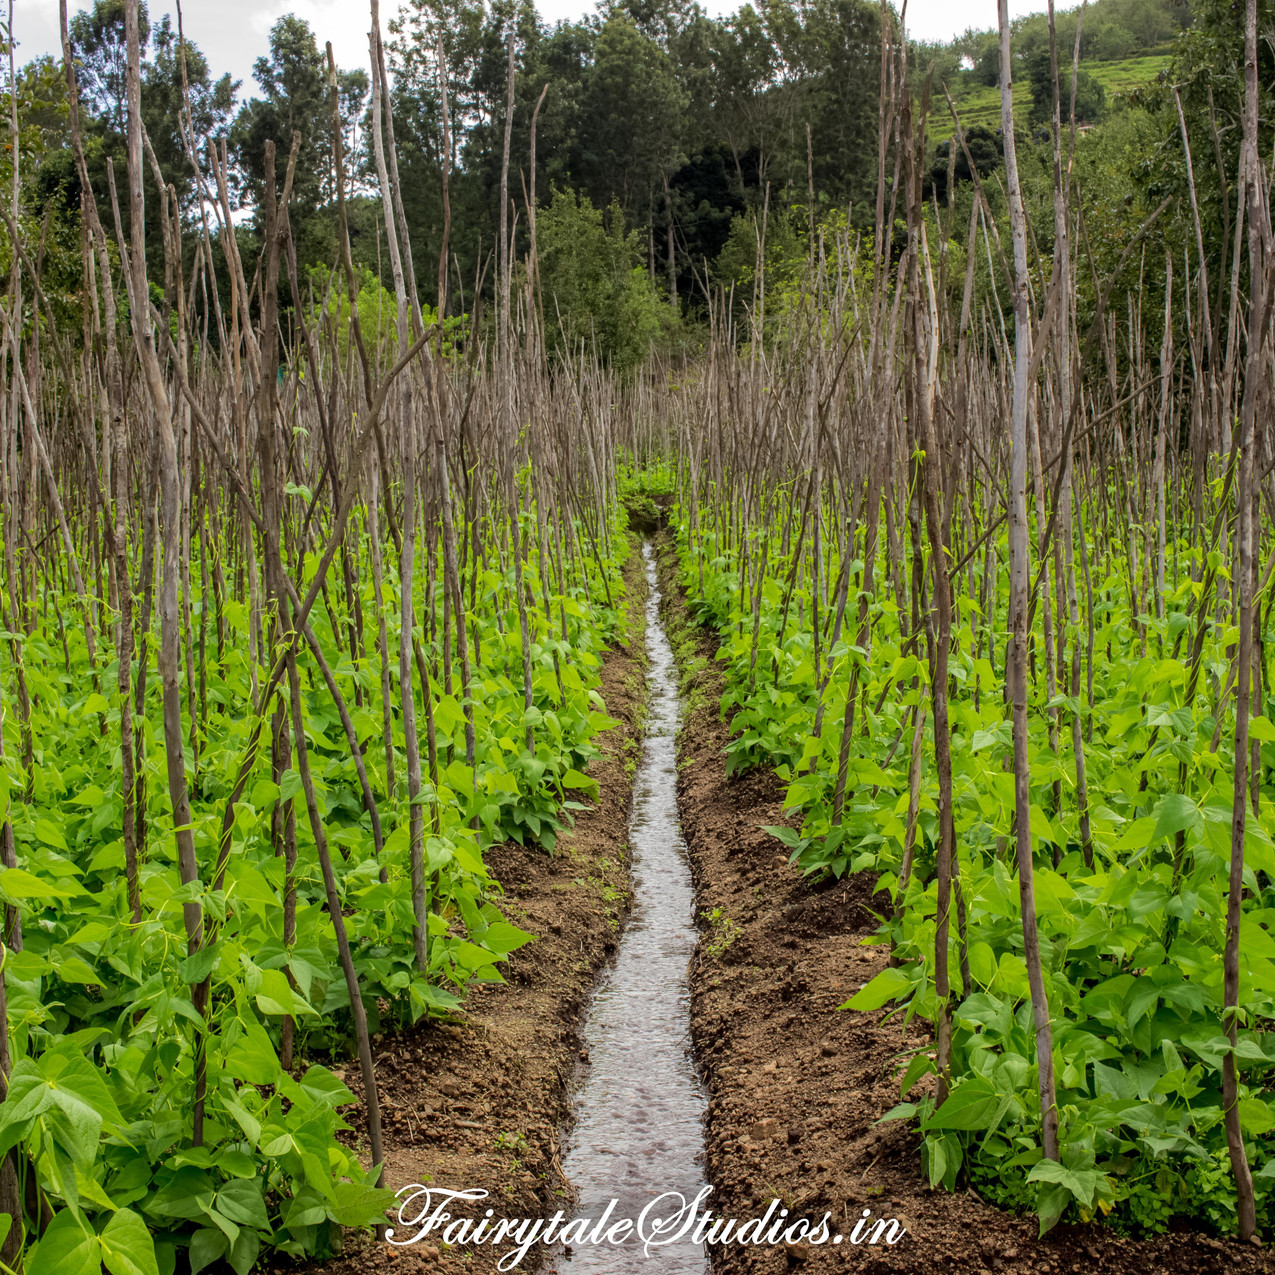 Farm_Pear County Kodaikanal_Fairytale Travels (5)